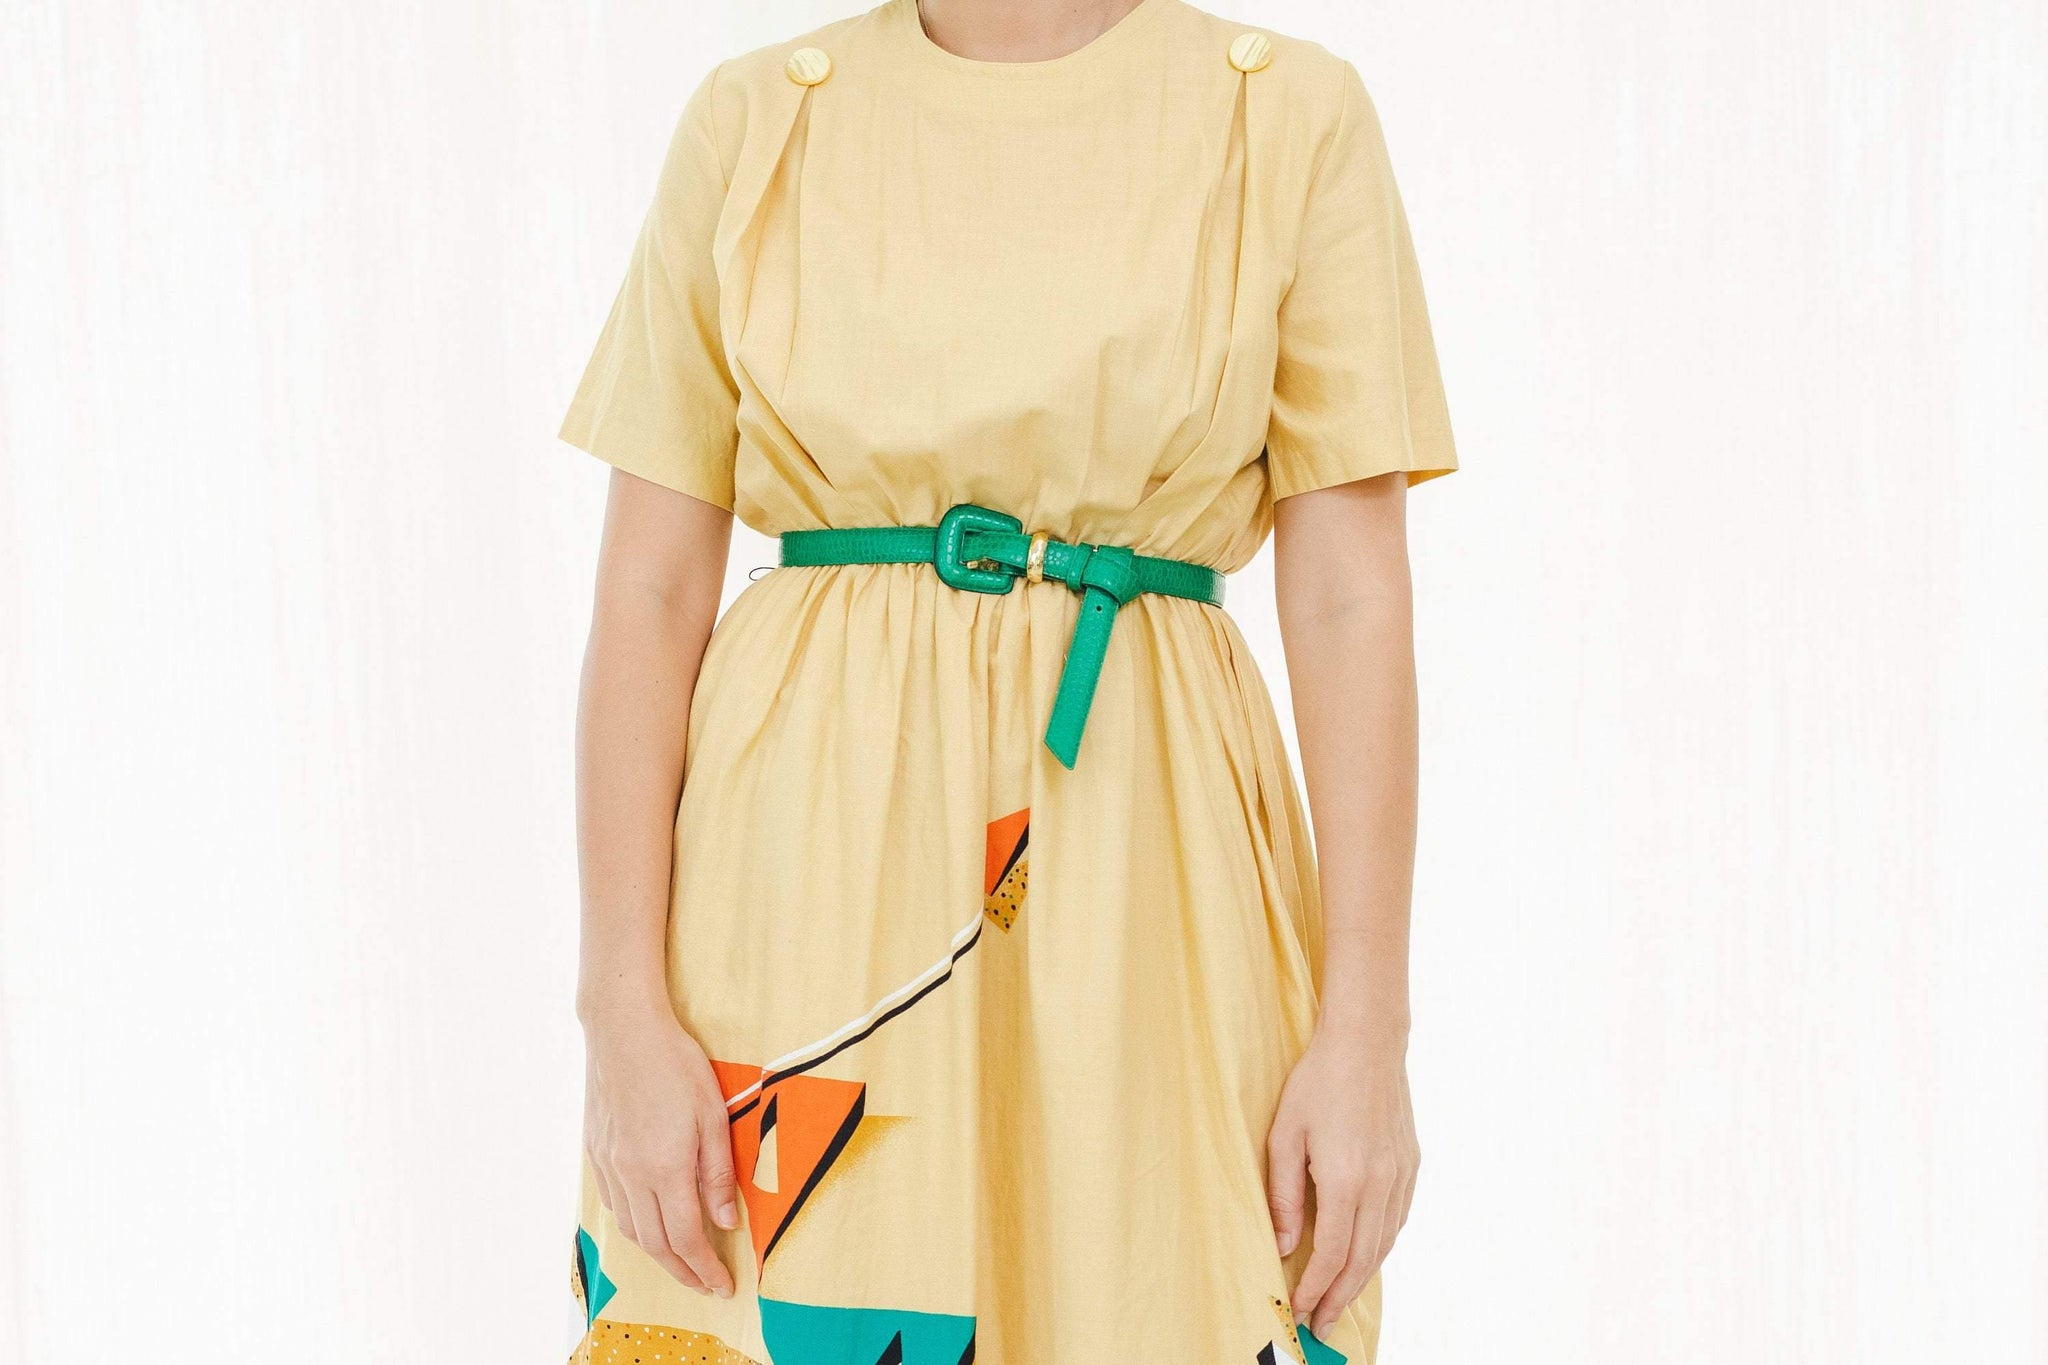 80's Japanese vintage dress in yellow - Sugar & Cream Vintage